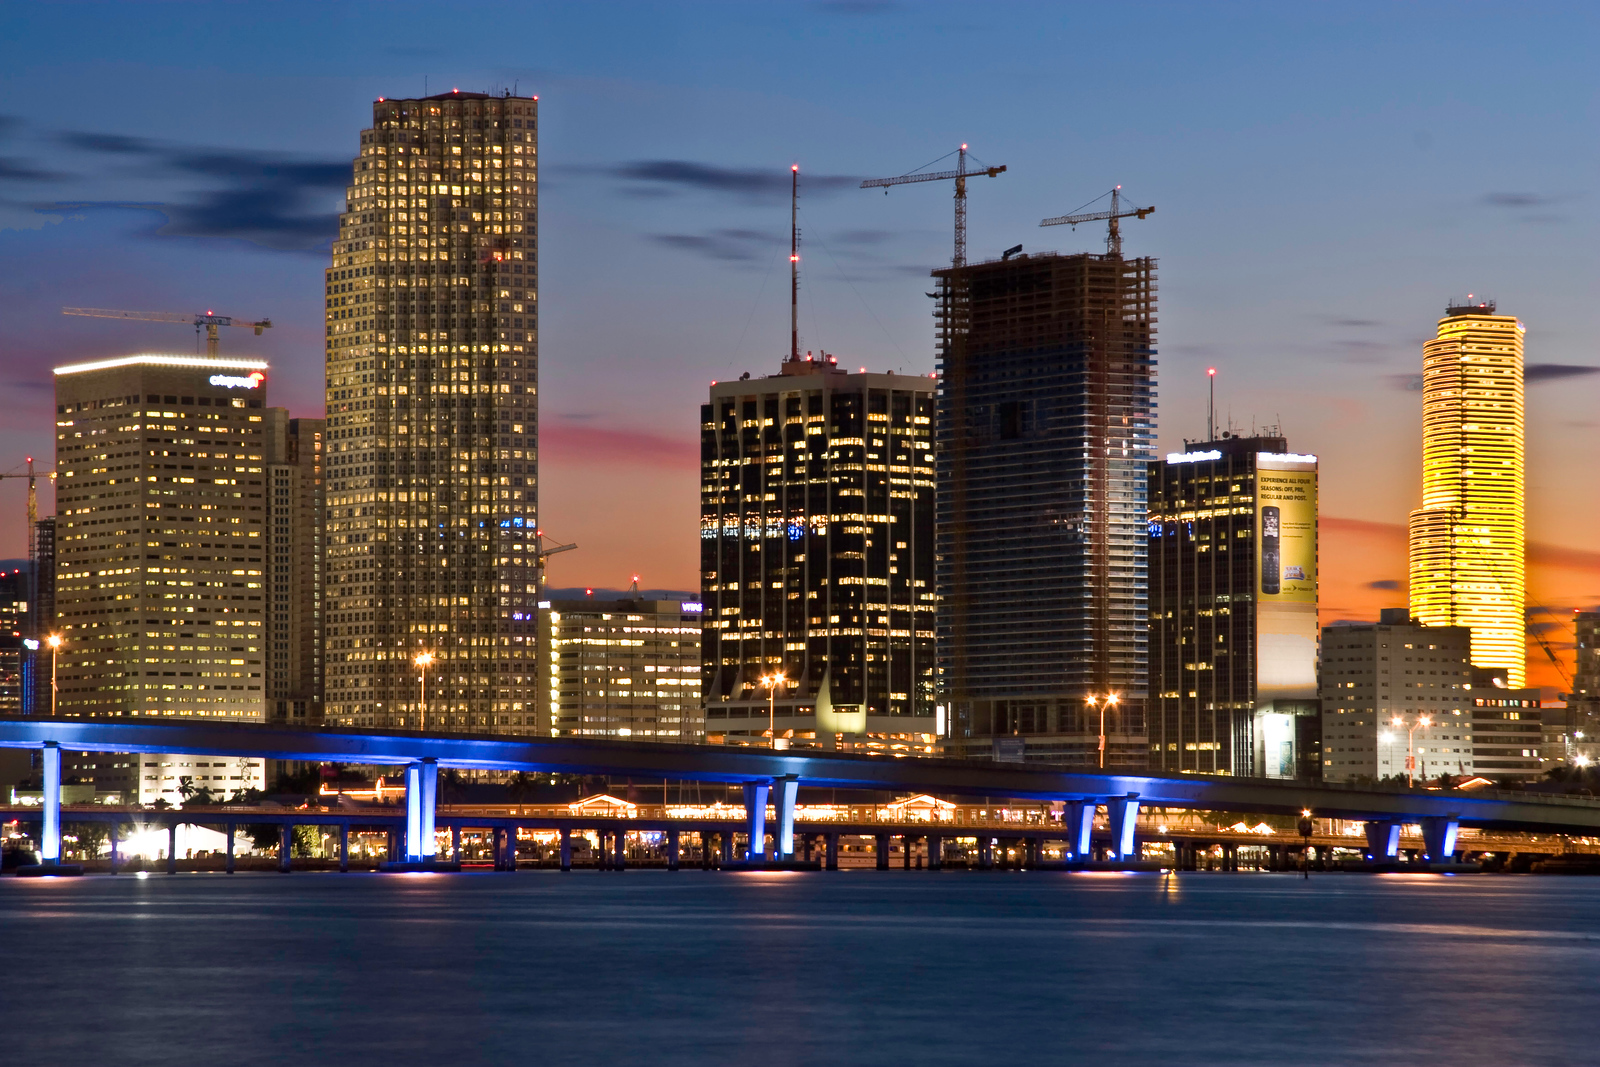 Skyline Of Downtown Miami At Sunset The Building On Then Far Right Changes Color